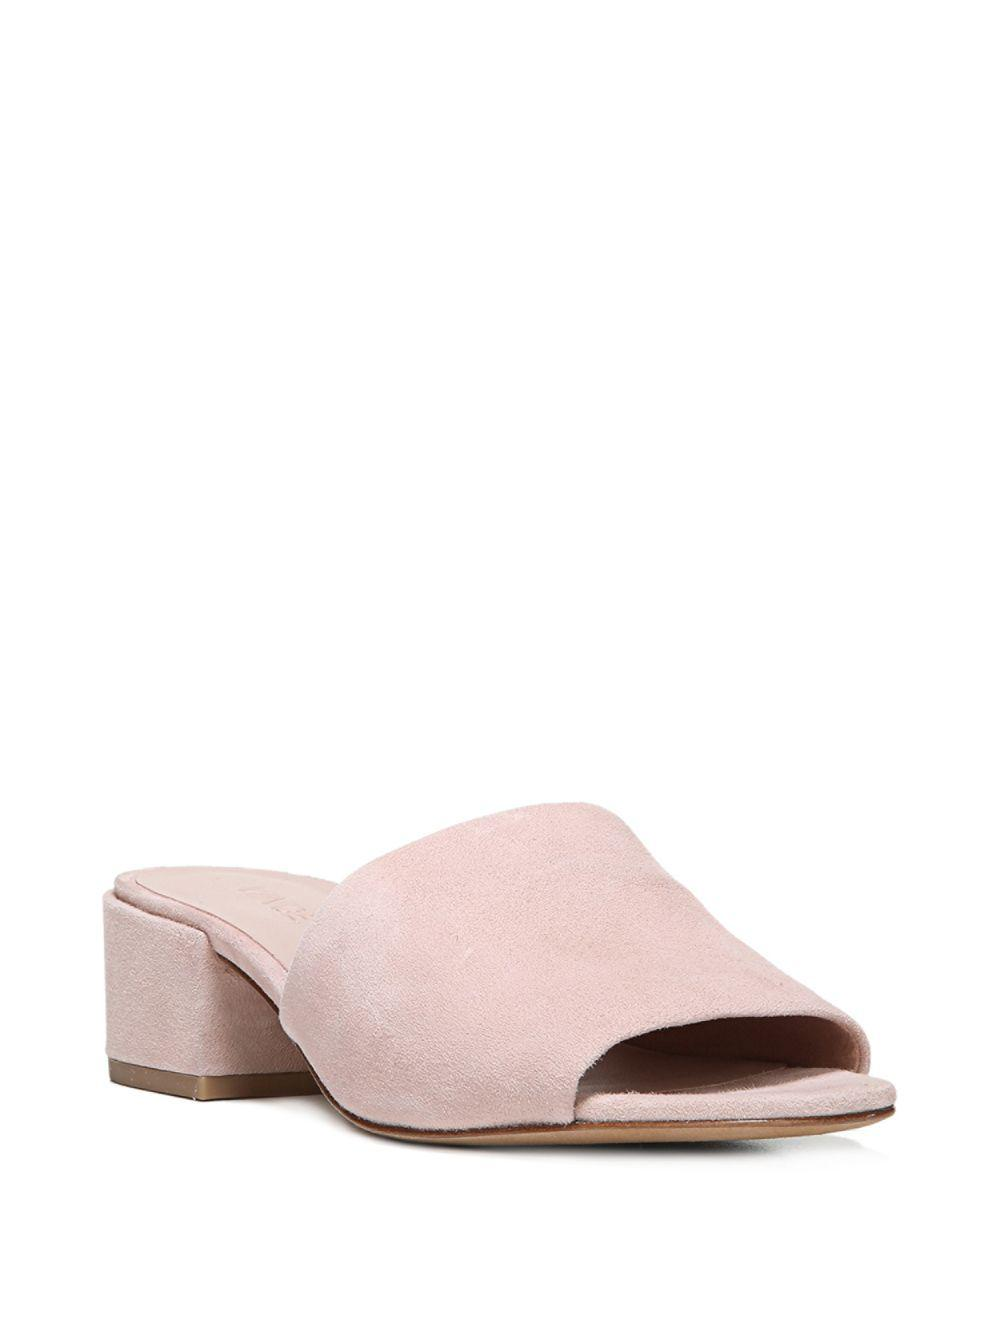 fbb7ed46d48 Lyst - Vince Rachelle Suede Slide in Pink - Save 54.0%